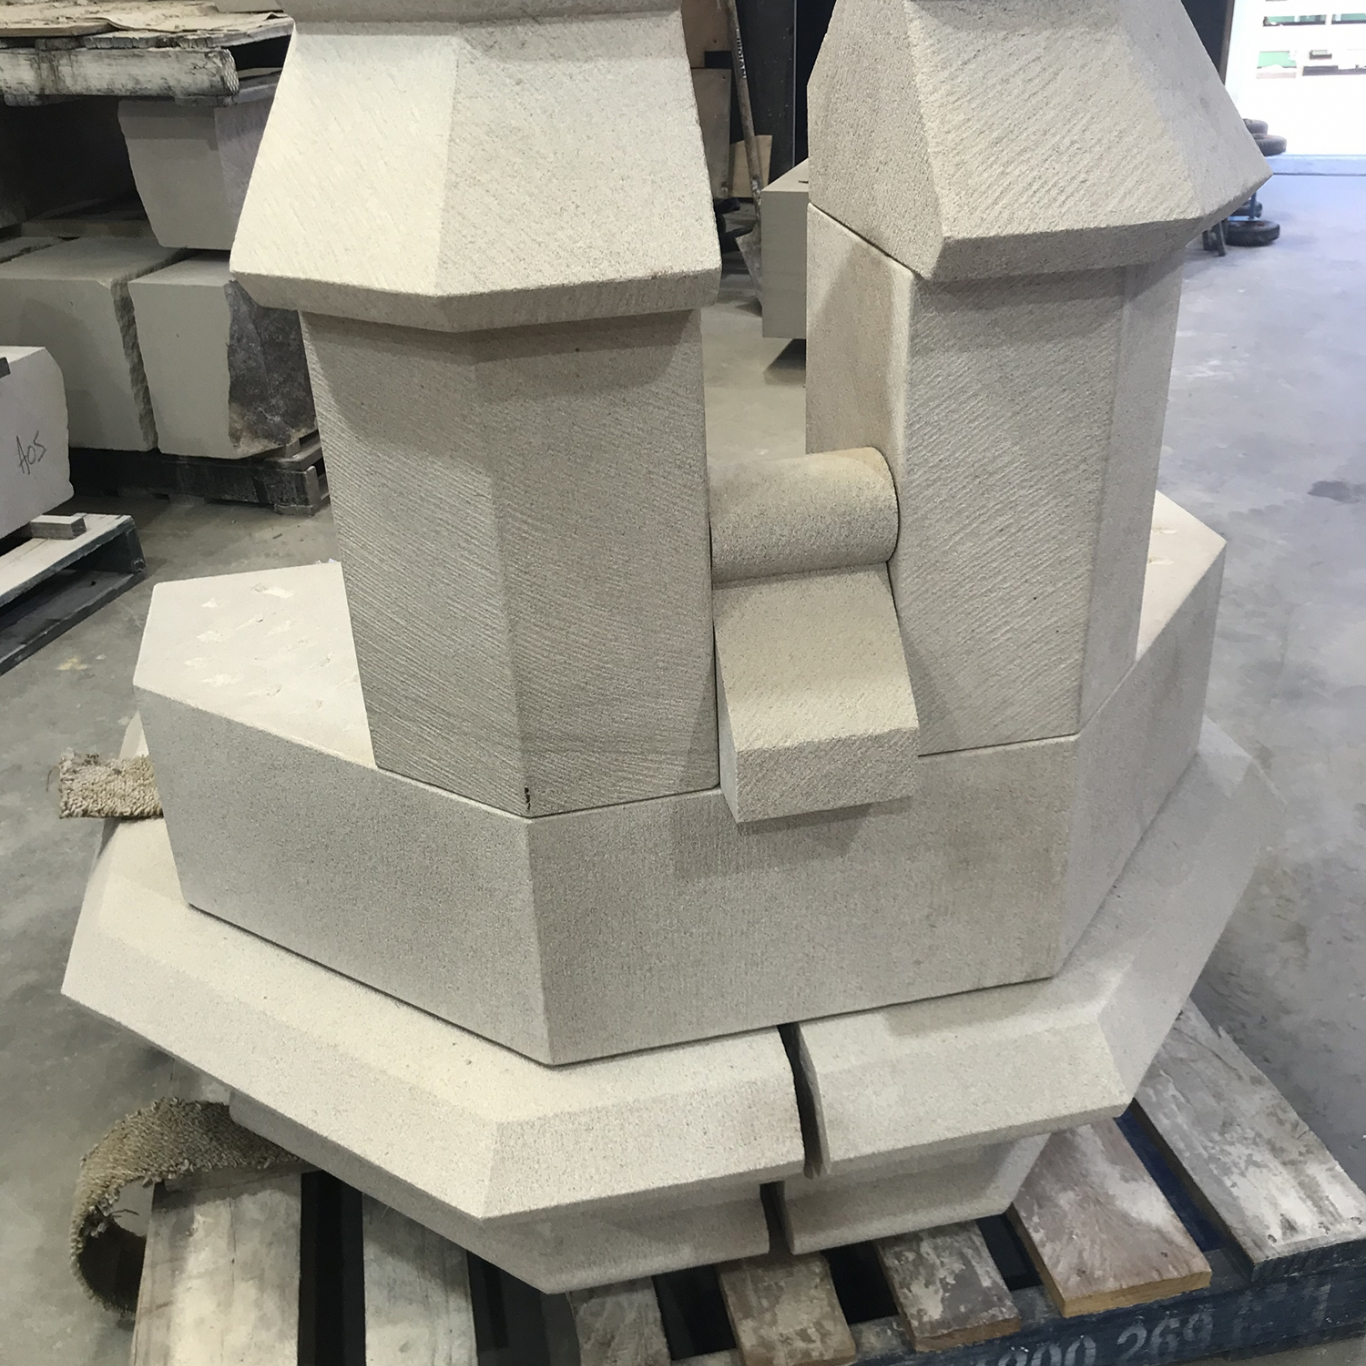 Sandstone piece cut to shape of turret.